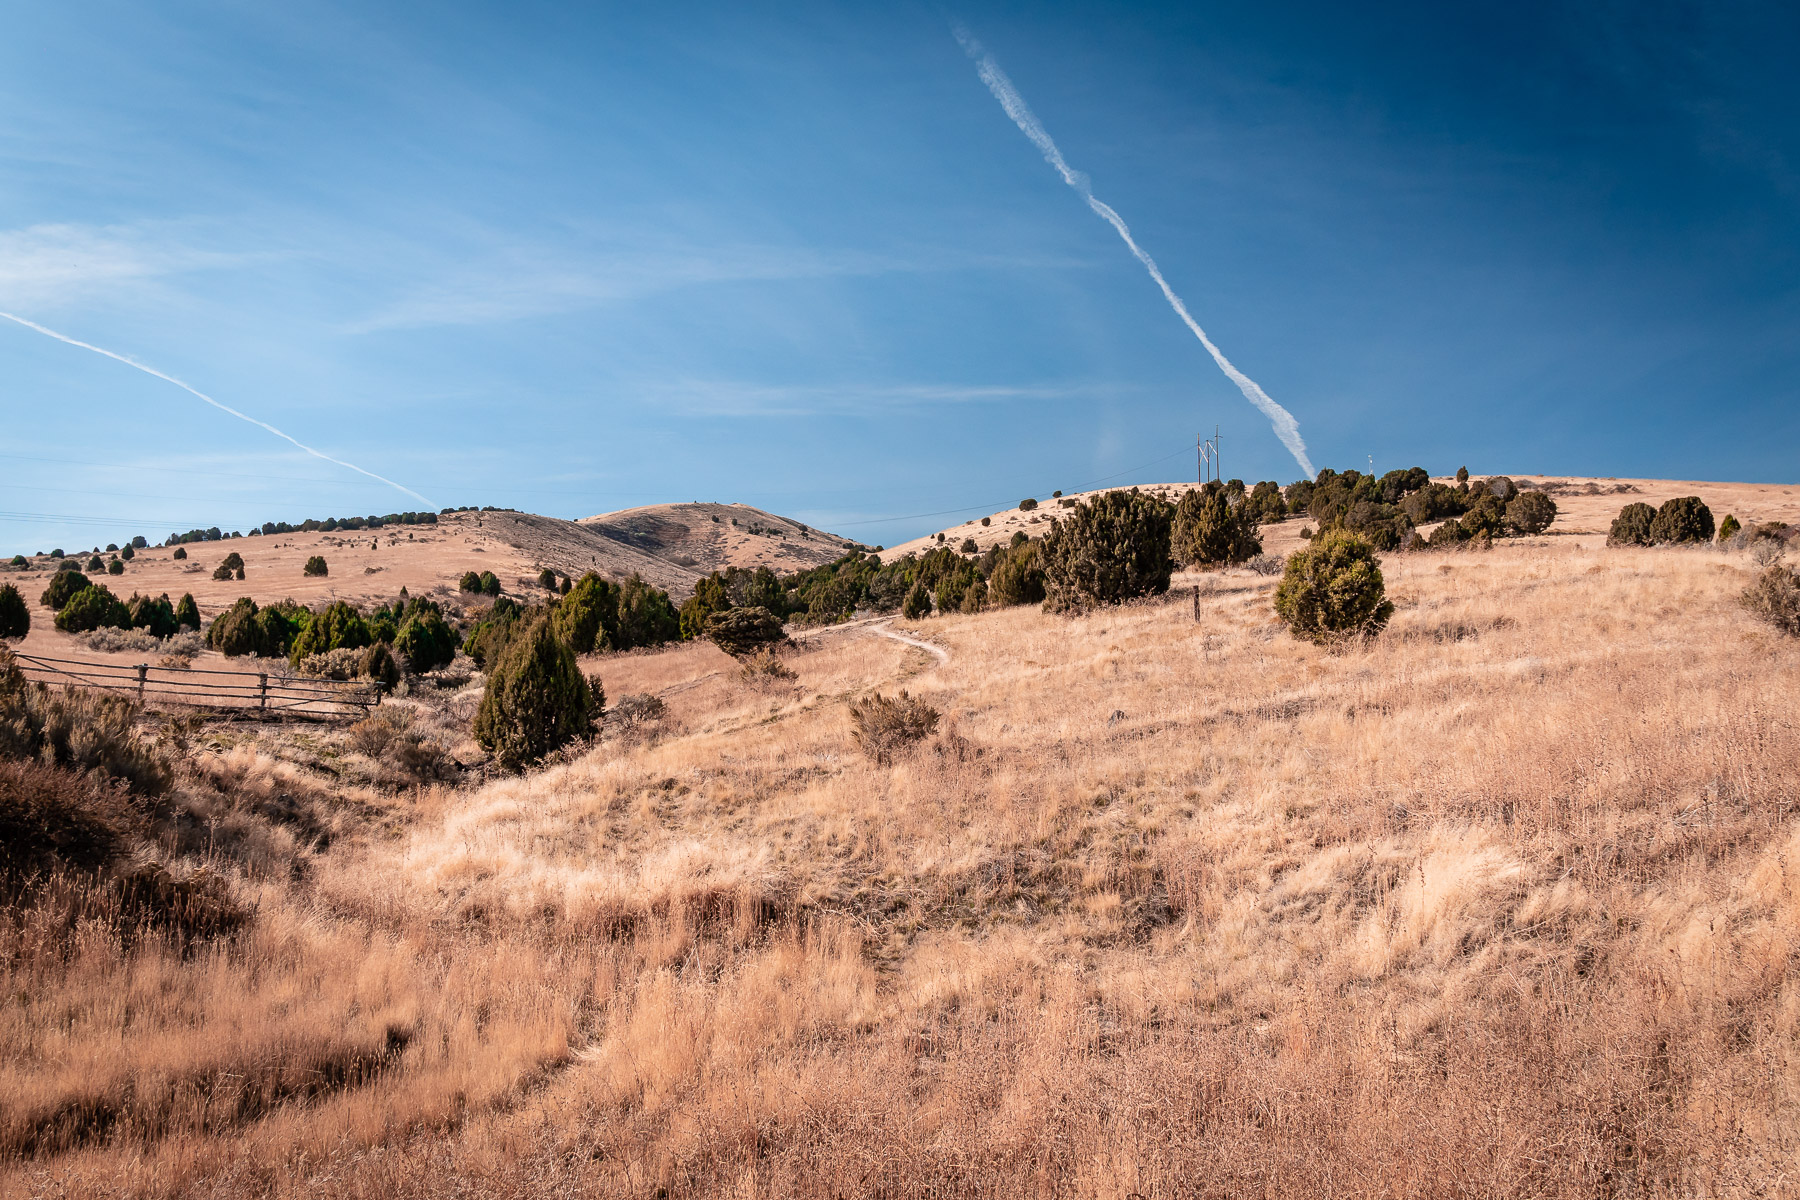 Blue skies over the hills in the outskirts of Pocatello, Idaho.